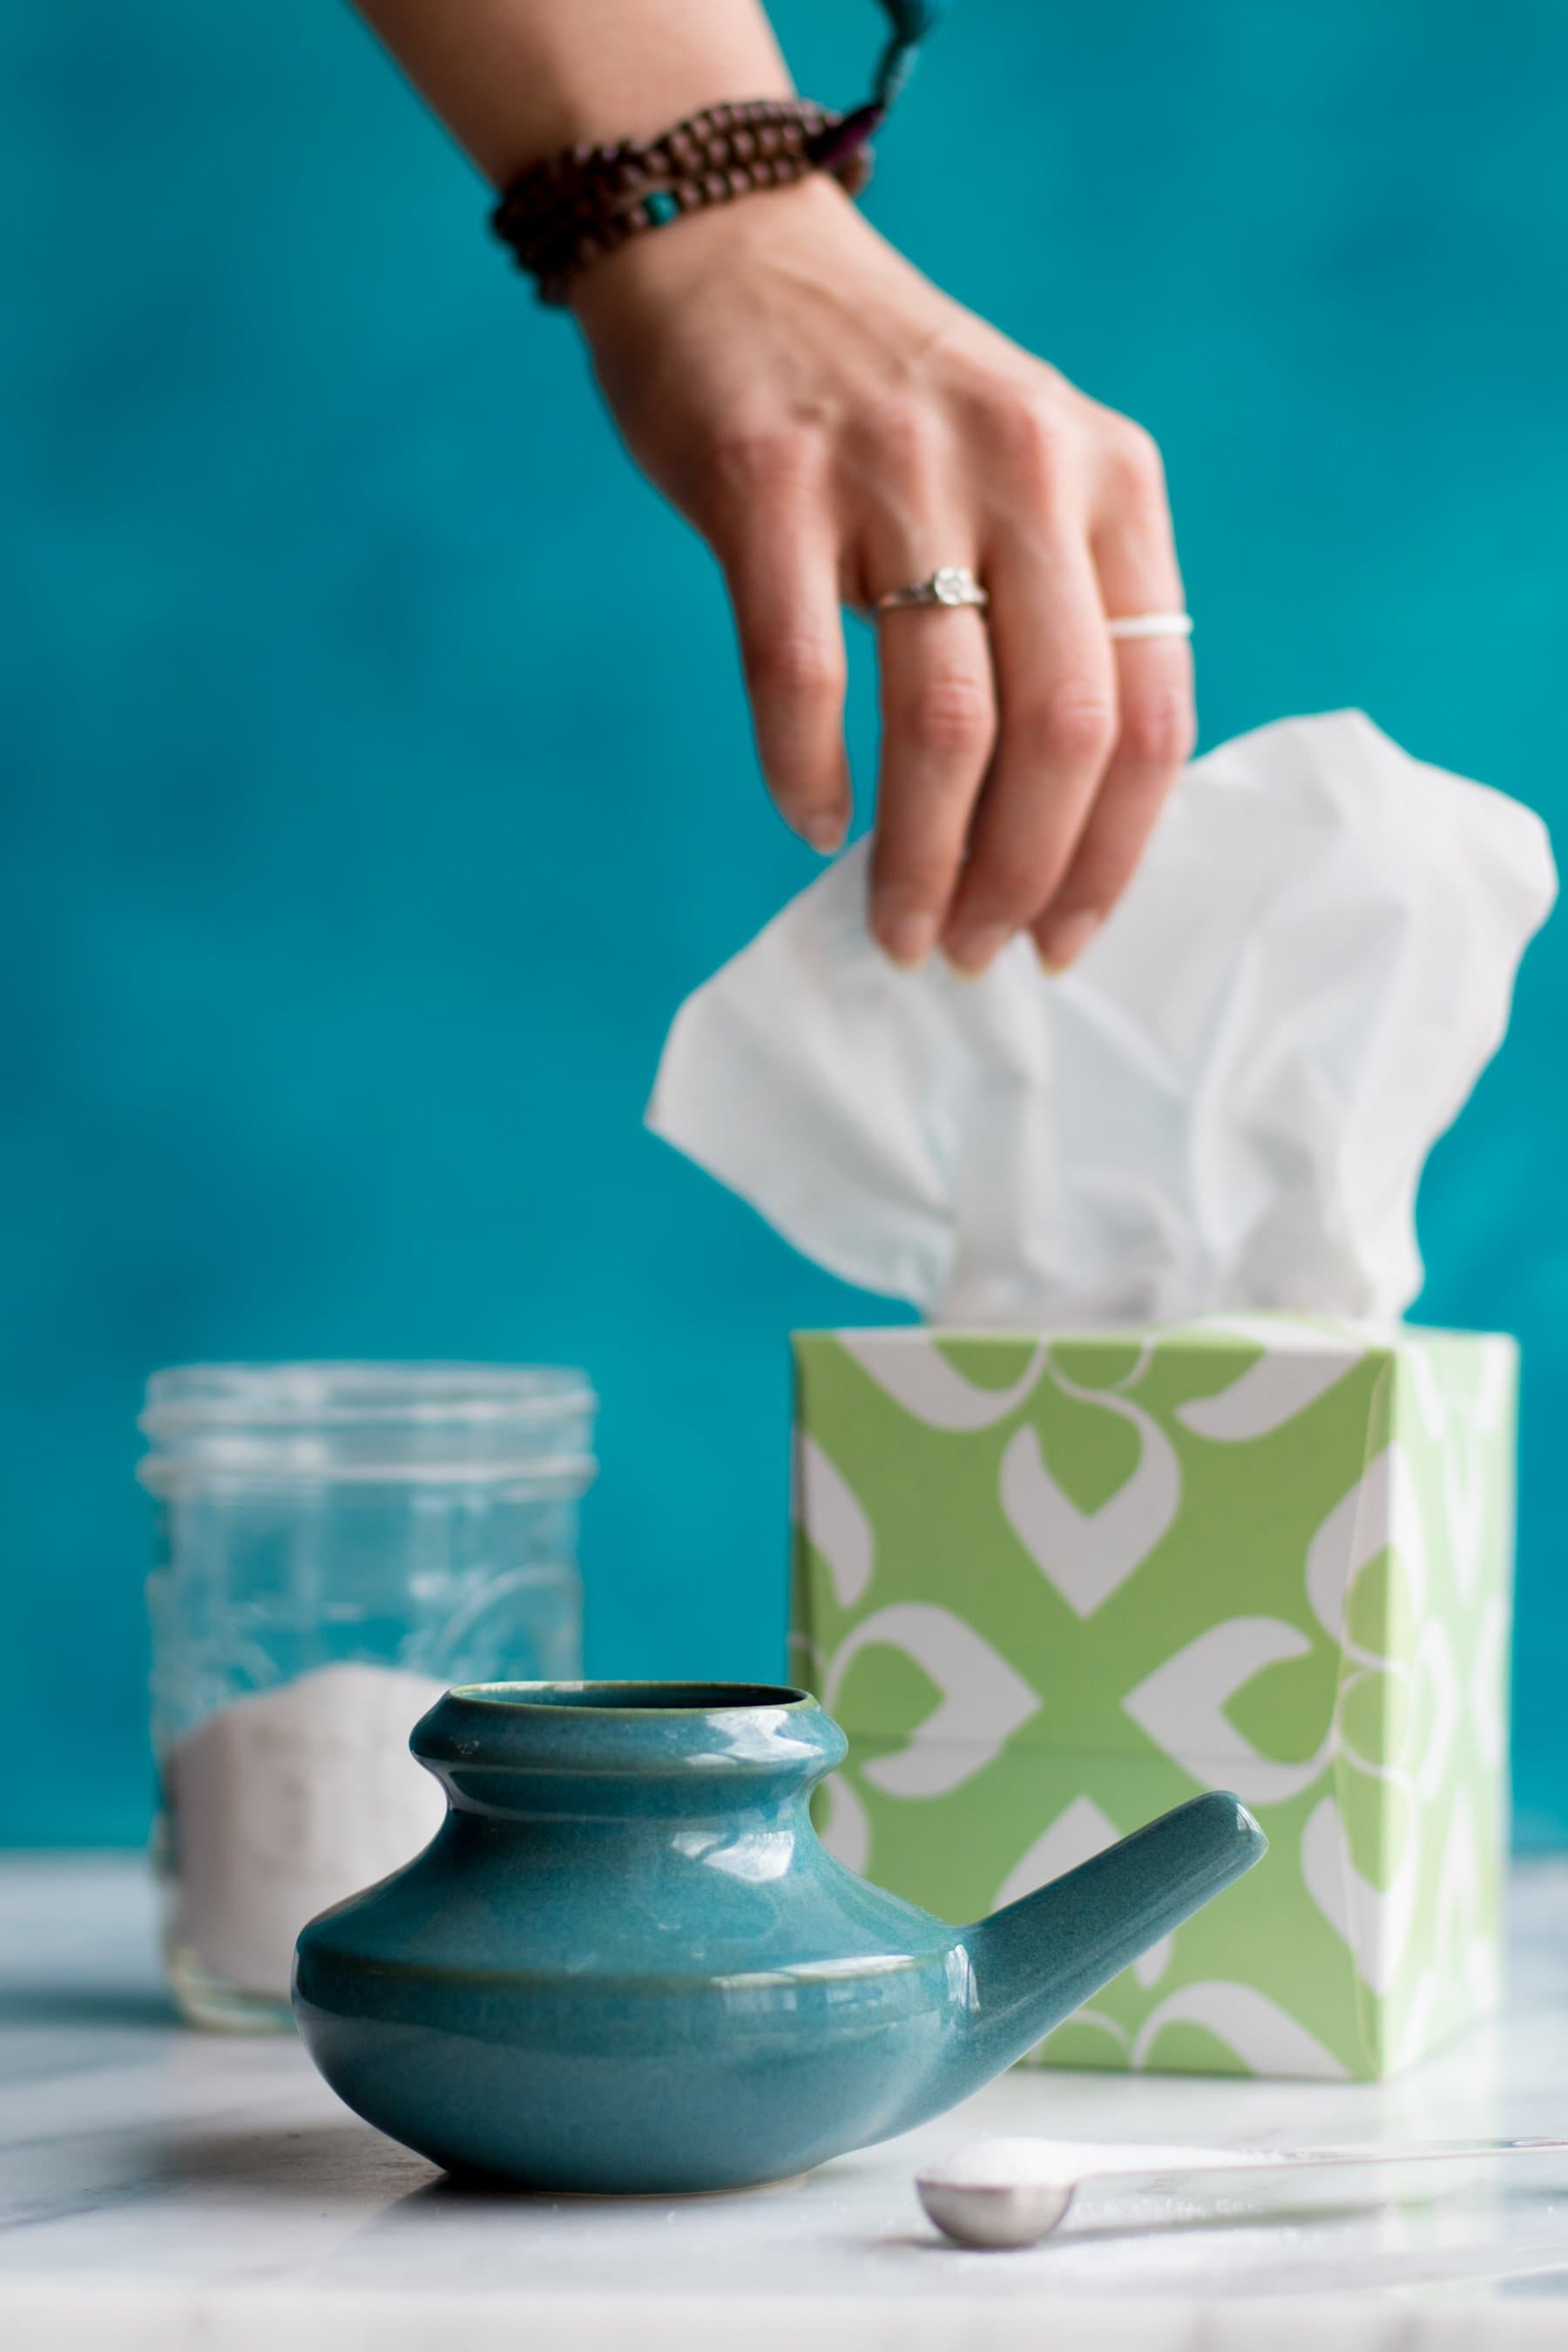 Cold and Flu Home Remedies - Neti Pot